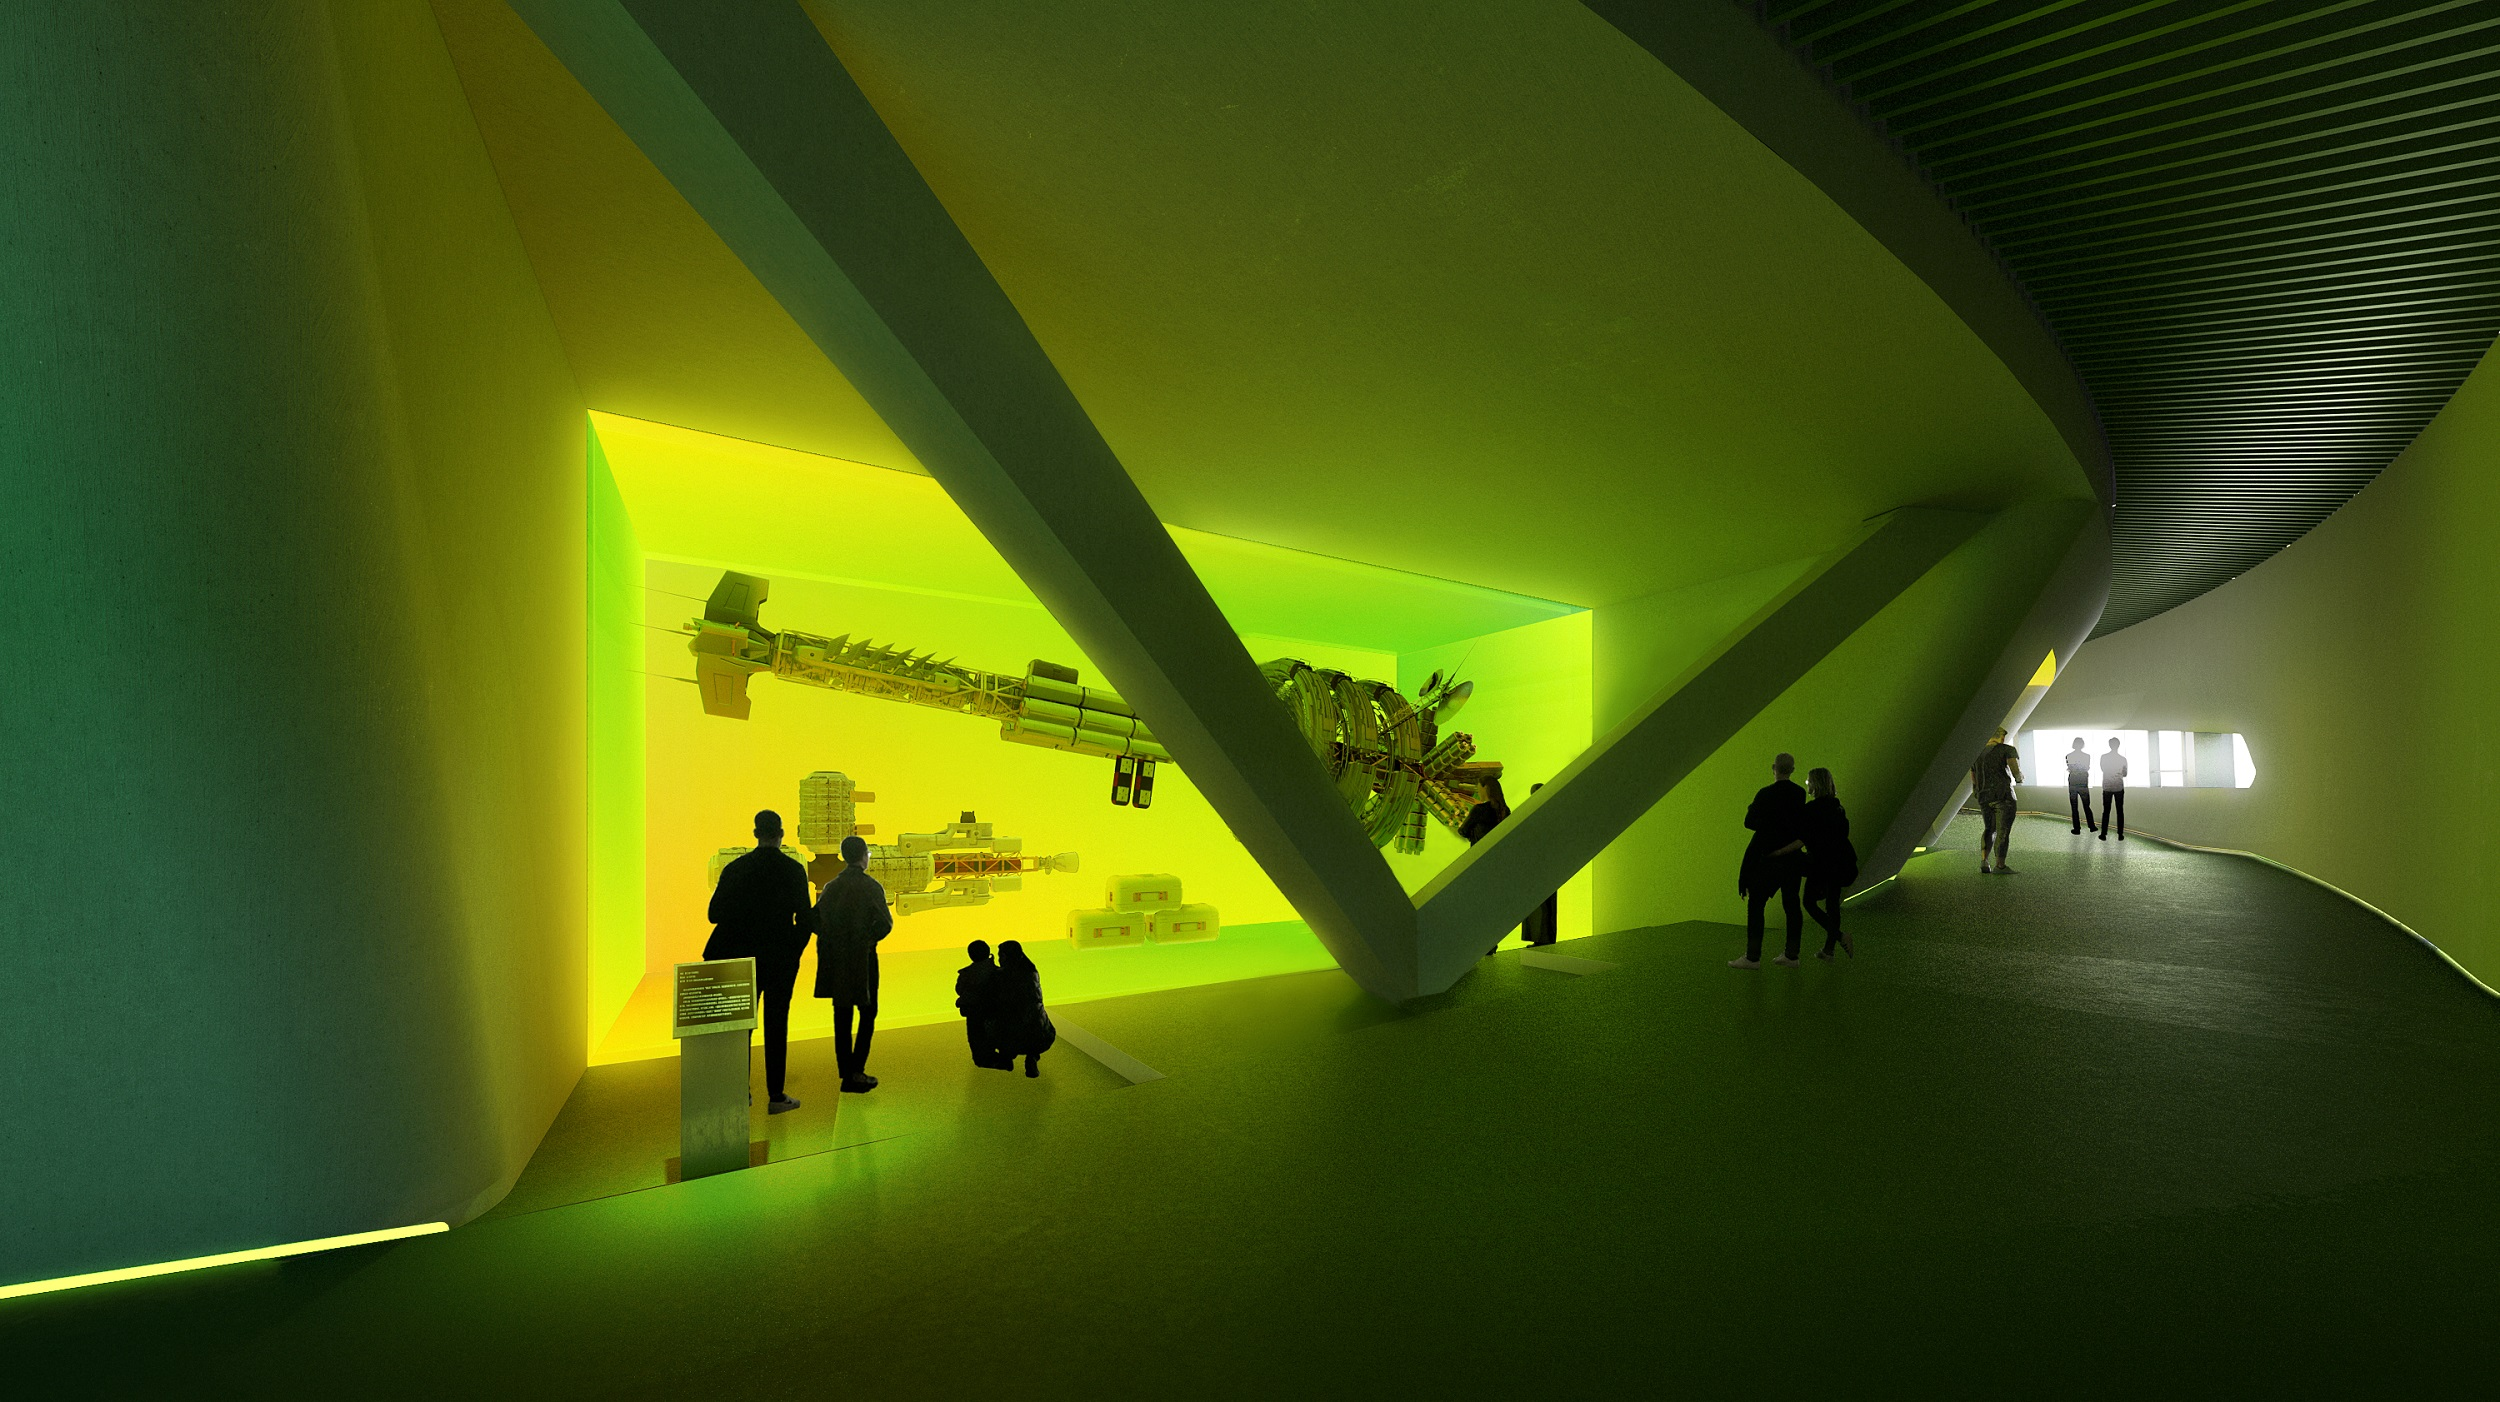 13_MAD_Hainan Science and Technology Museum_interior4